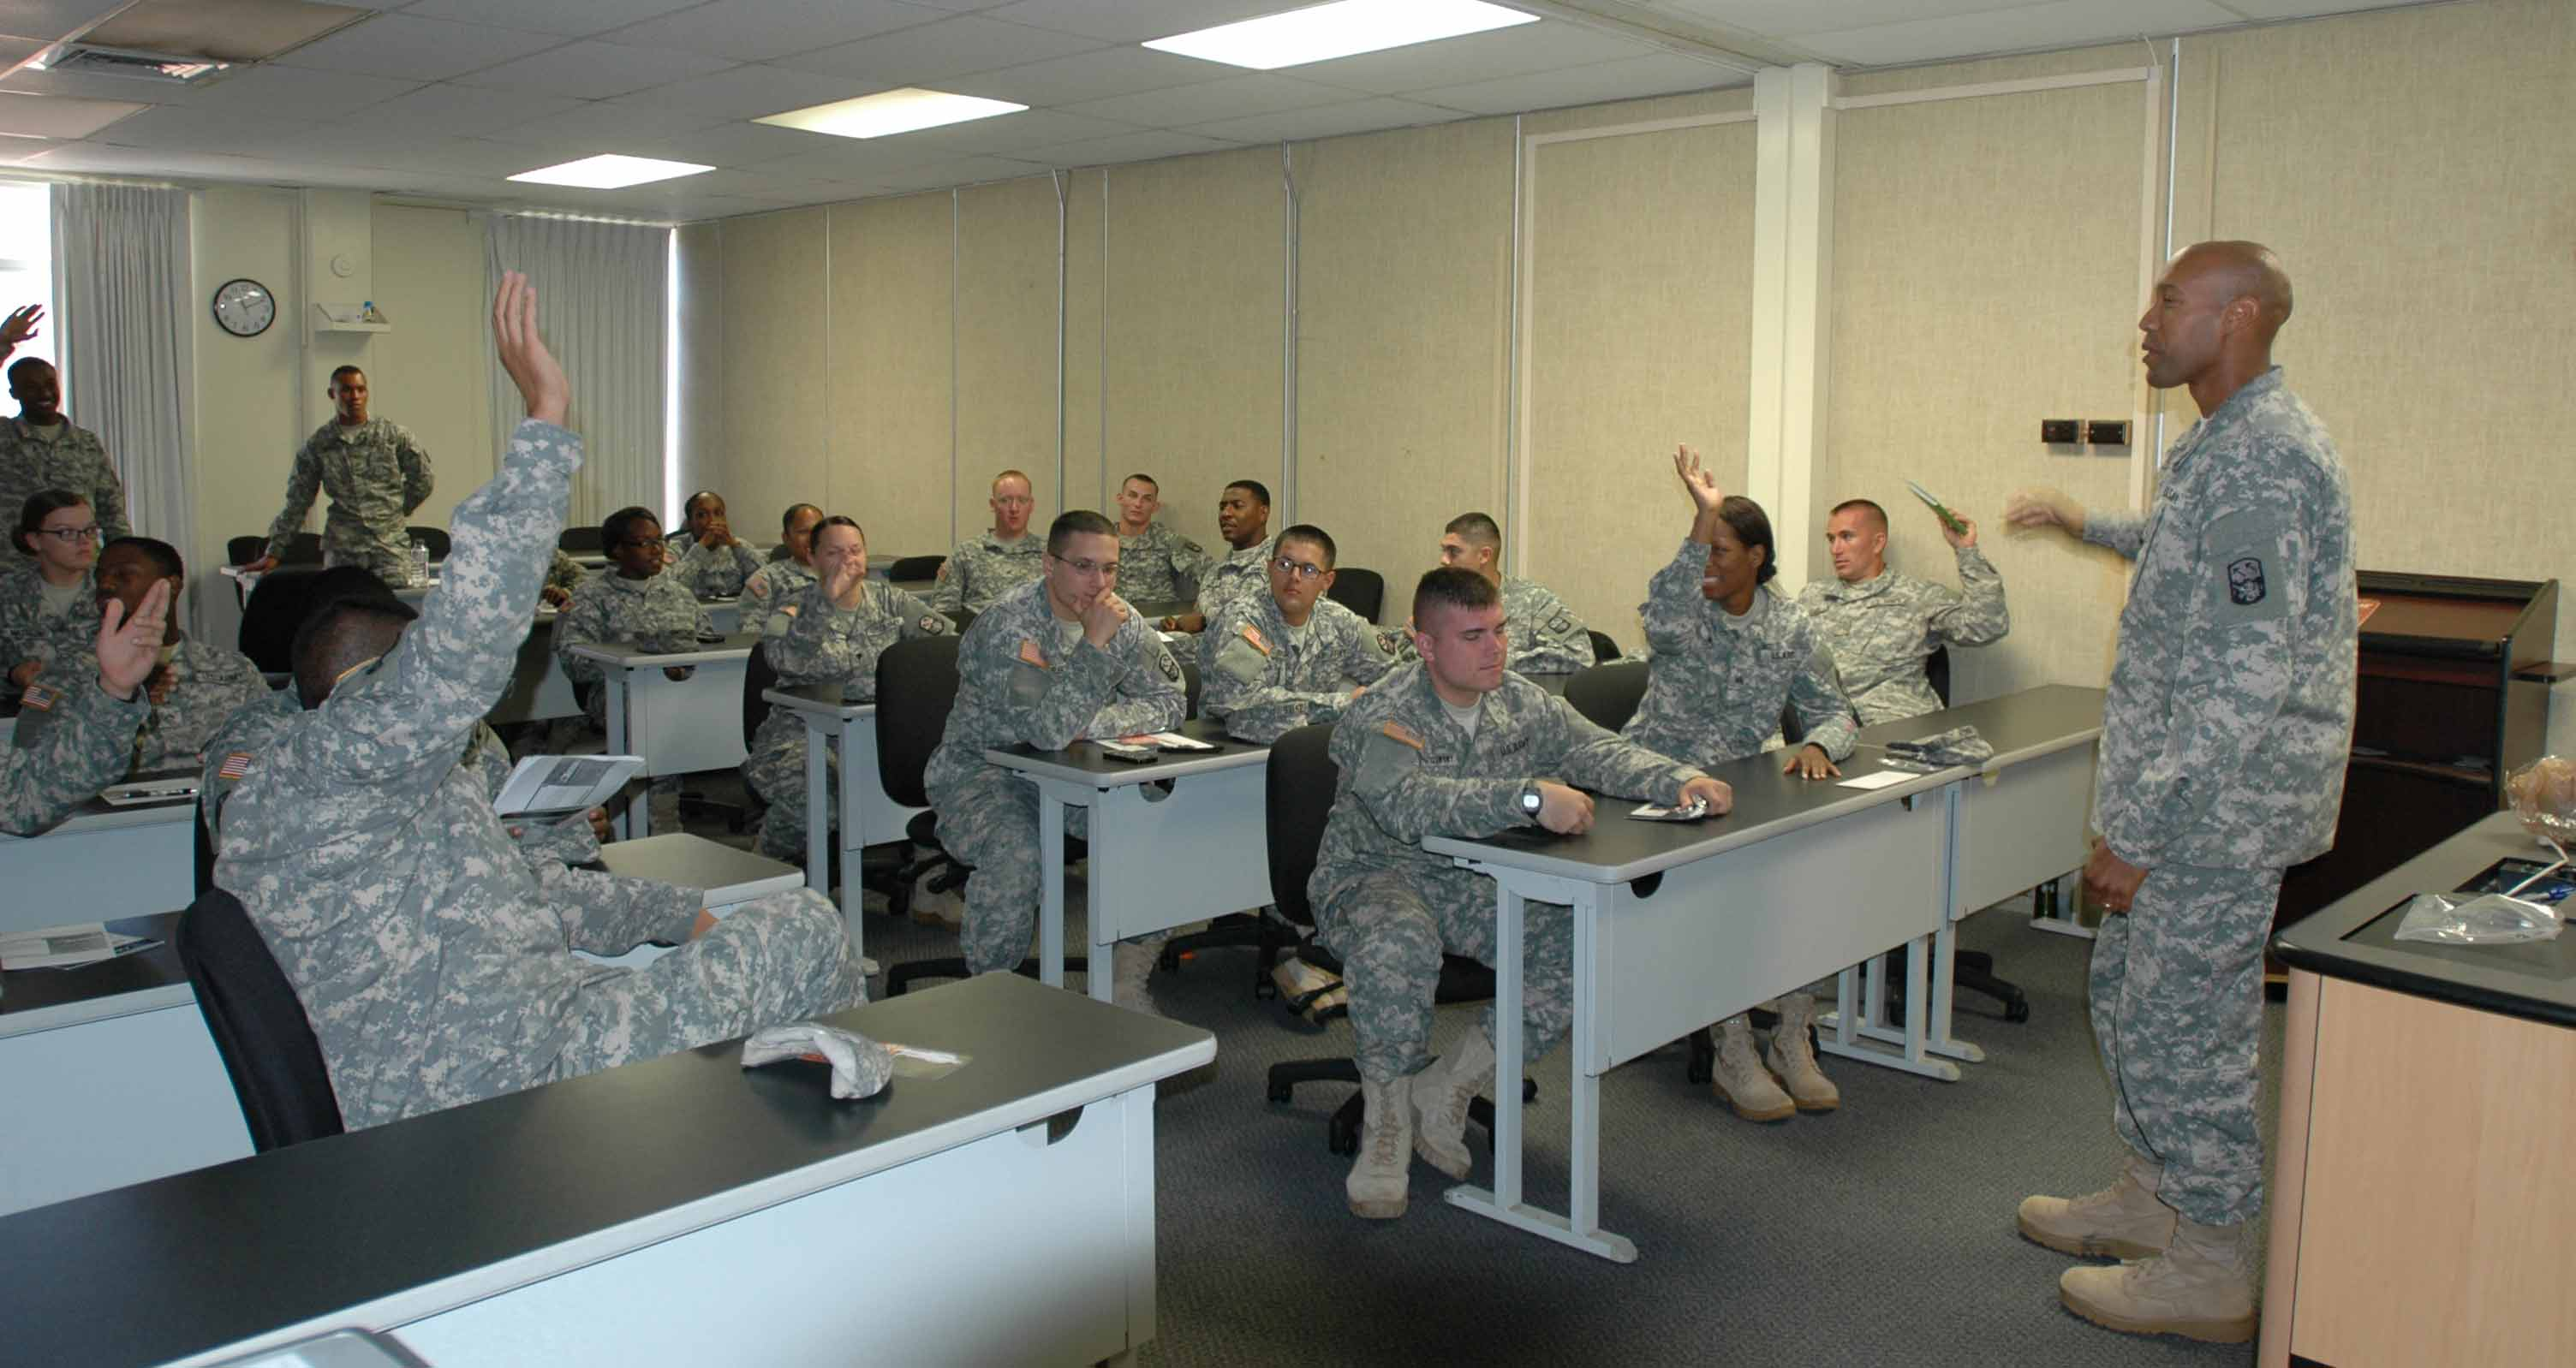 Soldiers matriculate at newly-opened \'ArmyU\' | Military.com